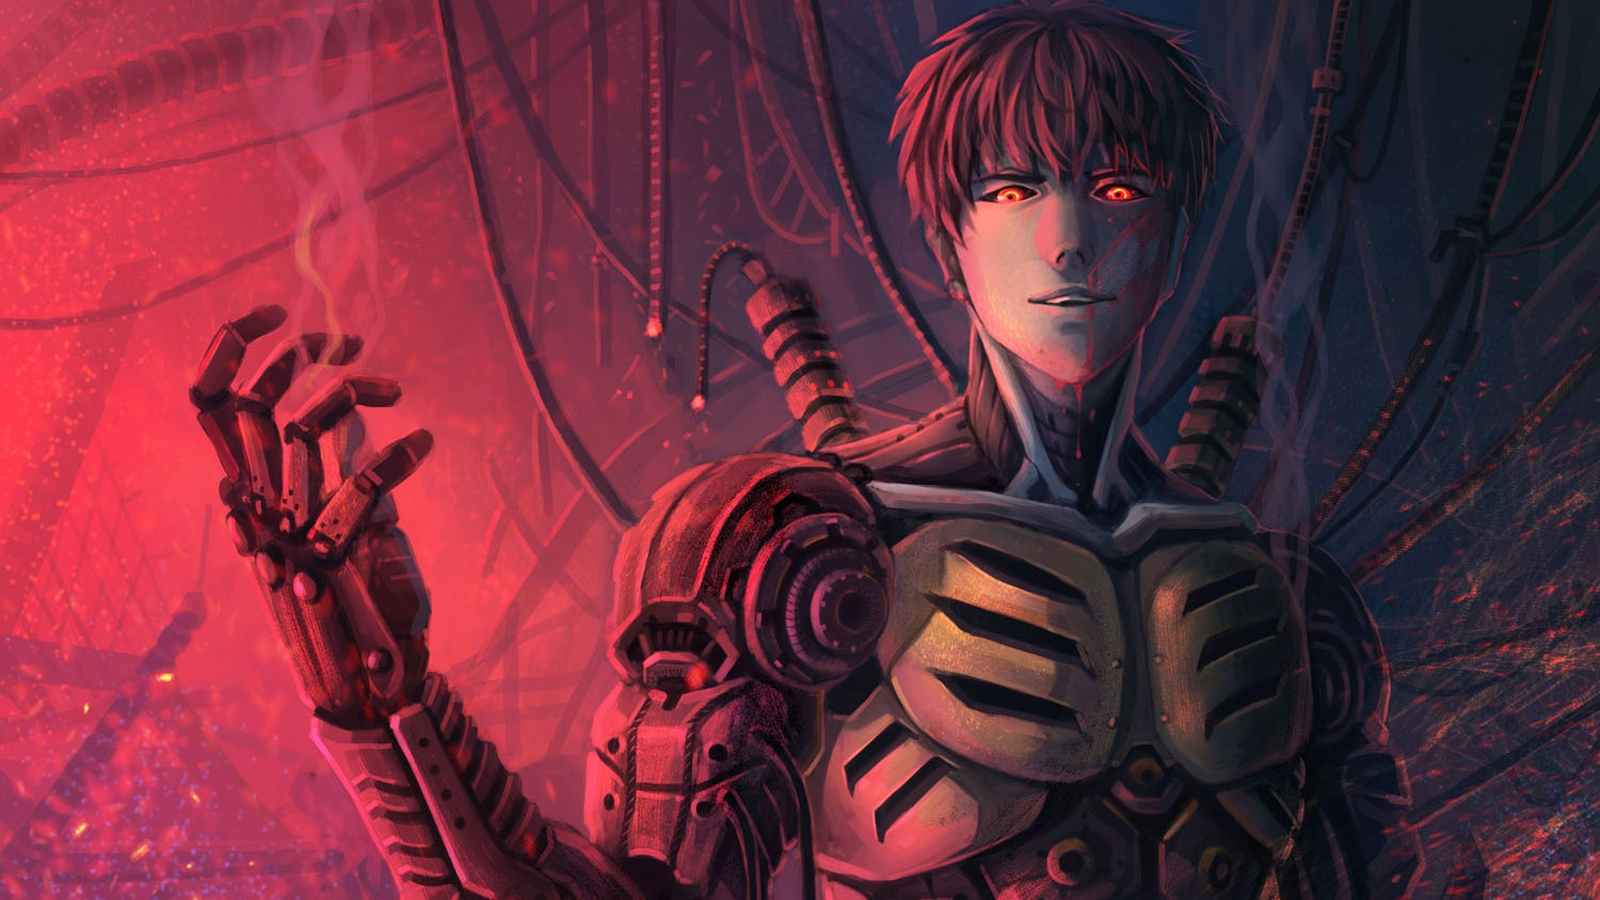 Popular Wallpaper Android One Punch Man - SiBQb8  You Should Have_45499      .jpg